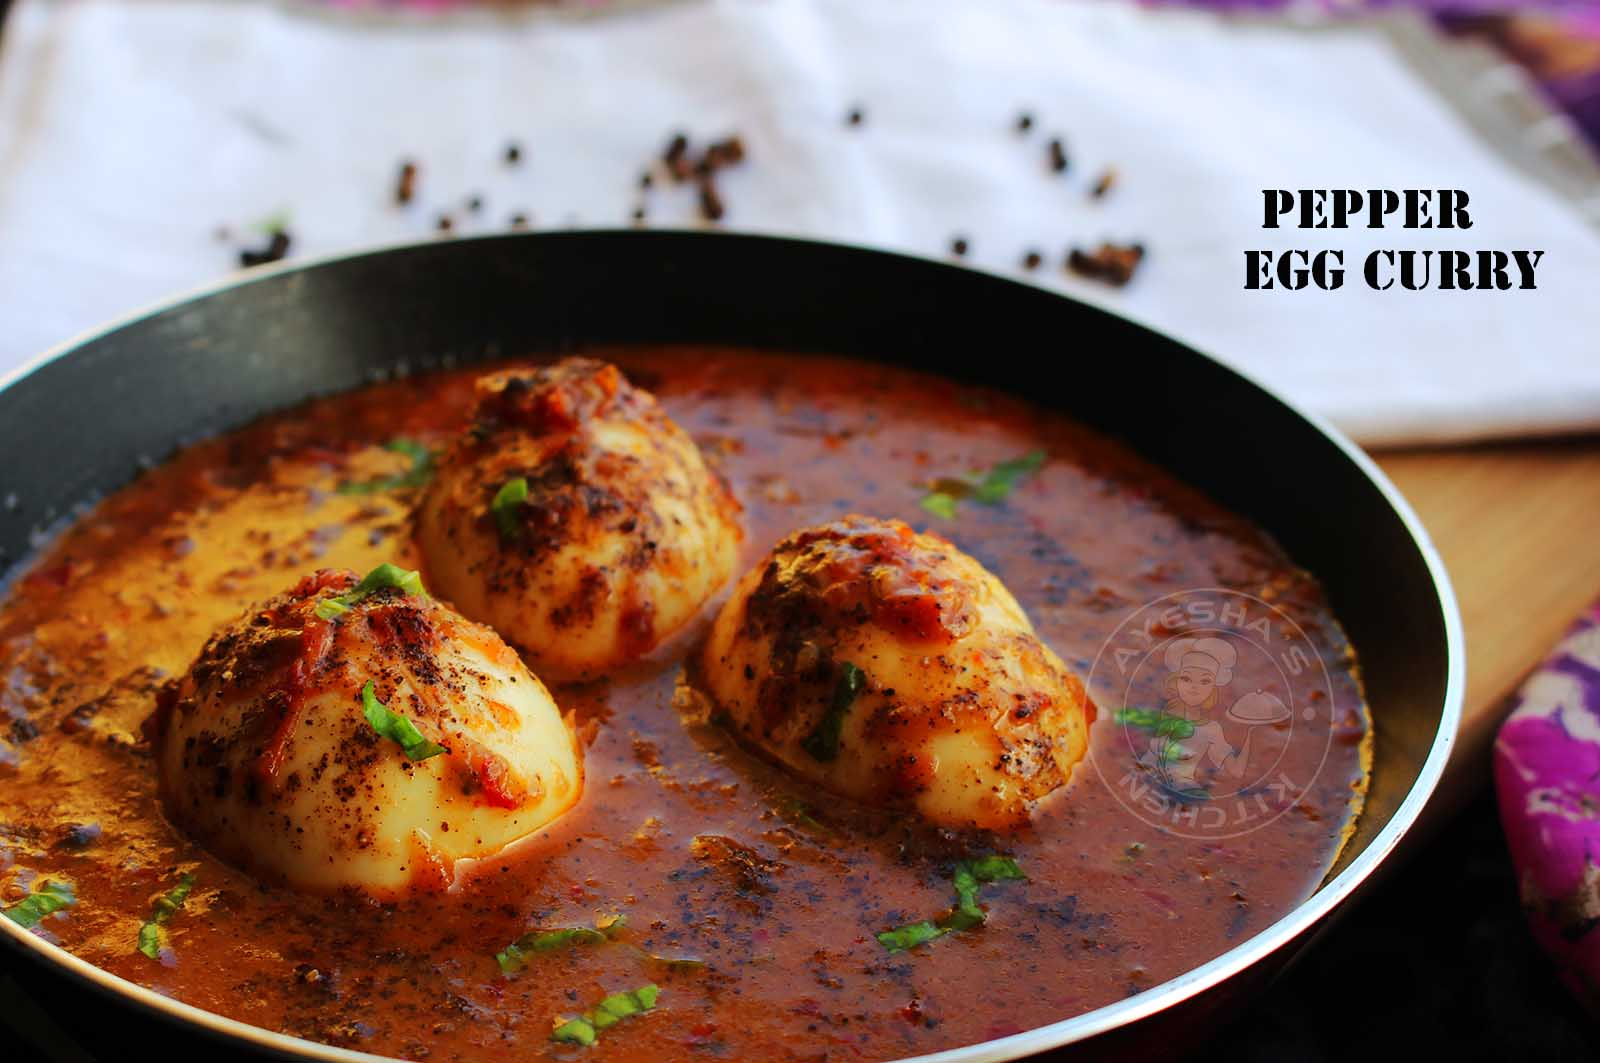 Best egg recipes pepper egg curry egg curry recipe curry masalaegg curry recipe indian egg recipes for dinner pepper and egg recipe egg recipes for breakfast recipes for eggs quick easy egg recipes forumfinder Gallery